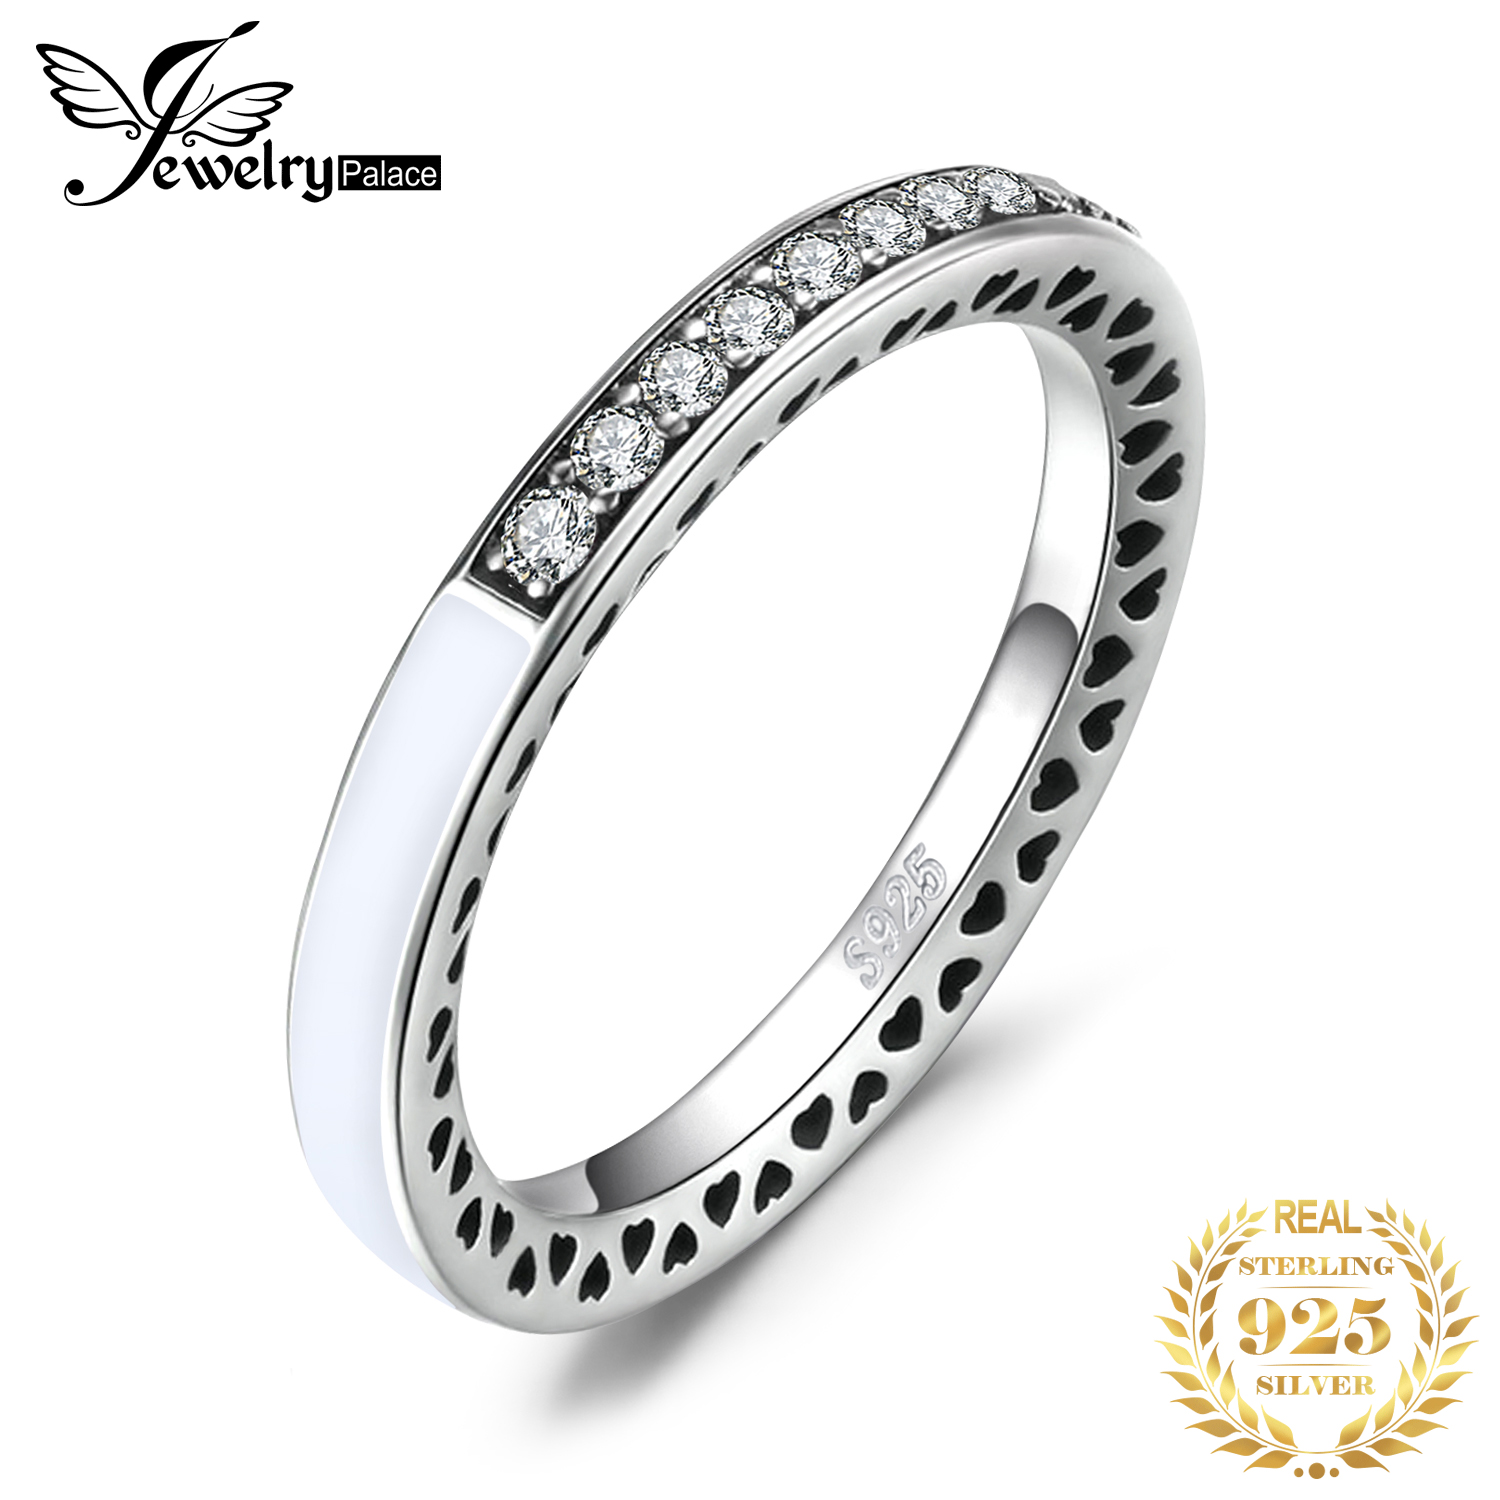 JPalace Channel Ring 925 Sterling Silver Rings For Women Stackable Wedding Ring Eternity Band Silver 925 Jewelry Fine Jewelry